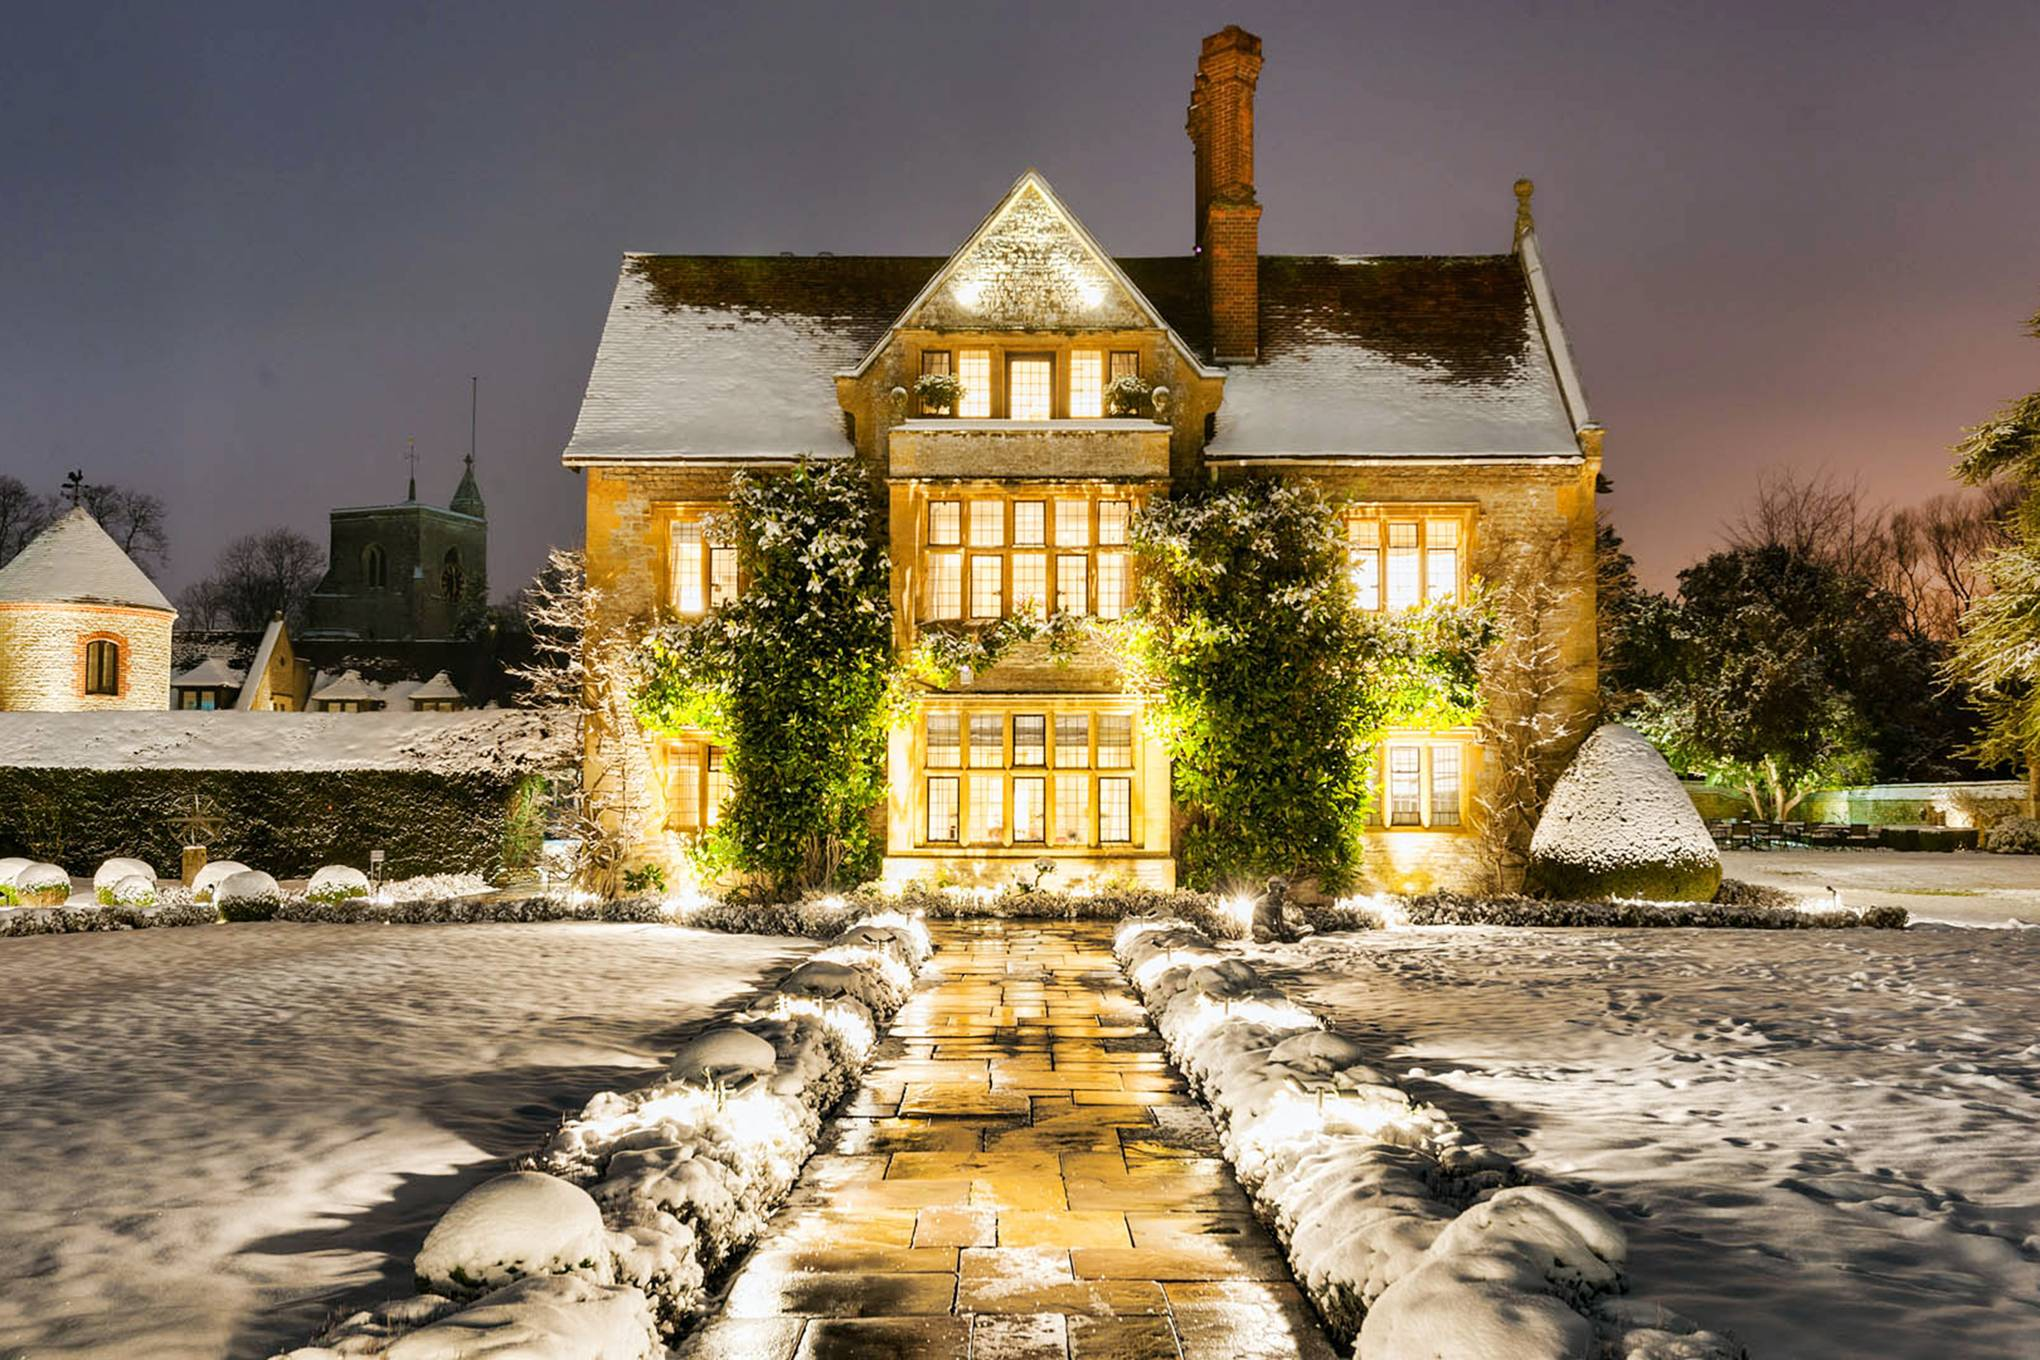 England Christmas Snow.The Best Hotels For Christmas In The Uk 2019 Cn Traveller